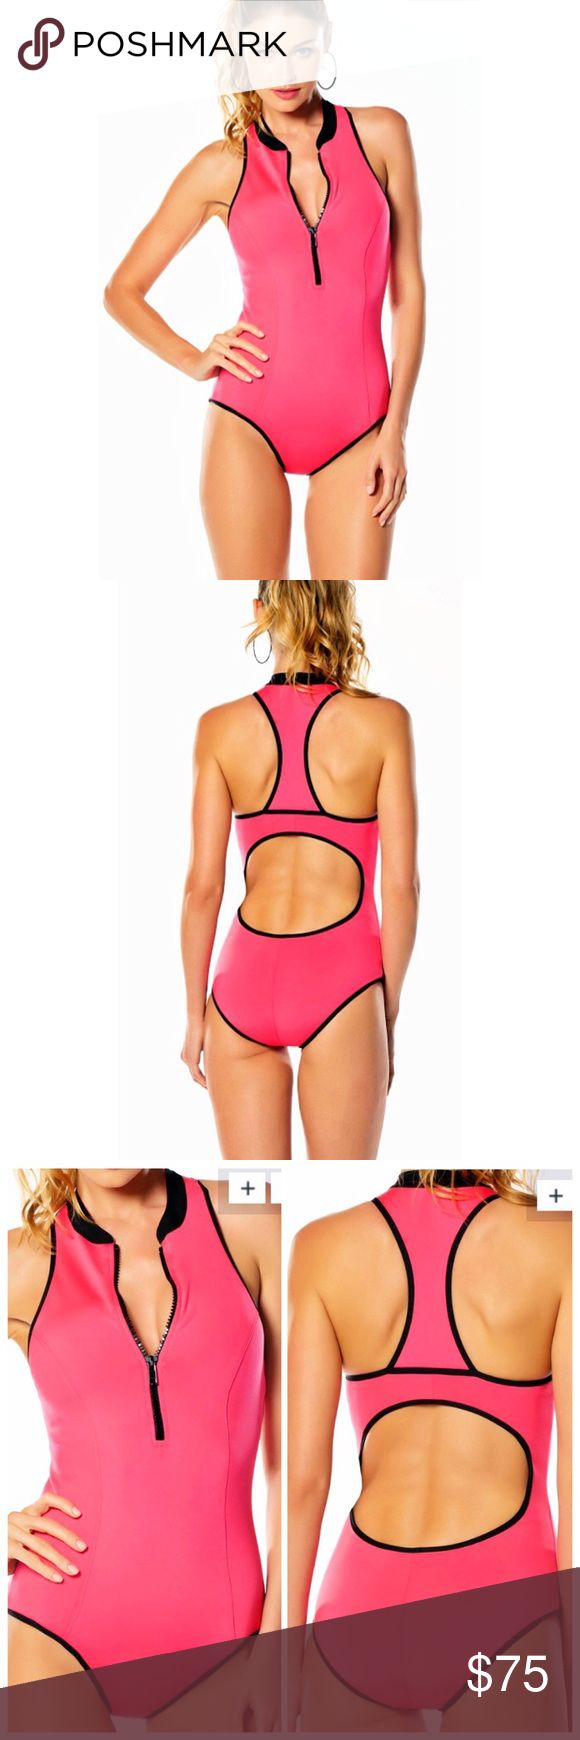 One Piece Racerback Swimsuit High neck one piece Racerback swimsuit with drop shelf support, removable halter cups, cutout back detail, and scuba zipper. 89% Nylon, 11% Spandex. Size Medium (6-8). NWT. BECCA Swim One Pieces